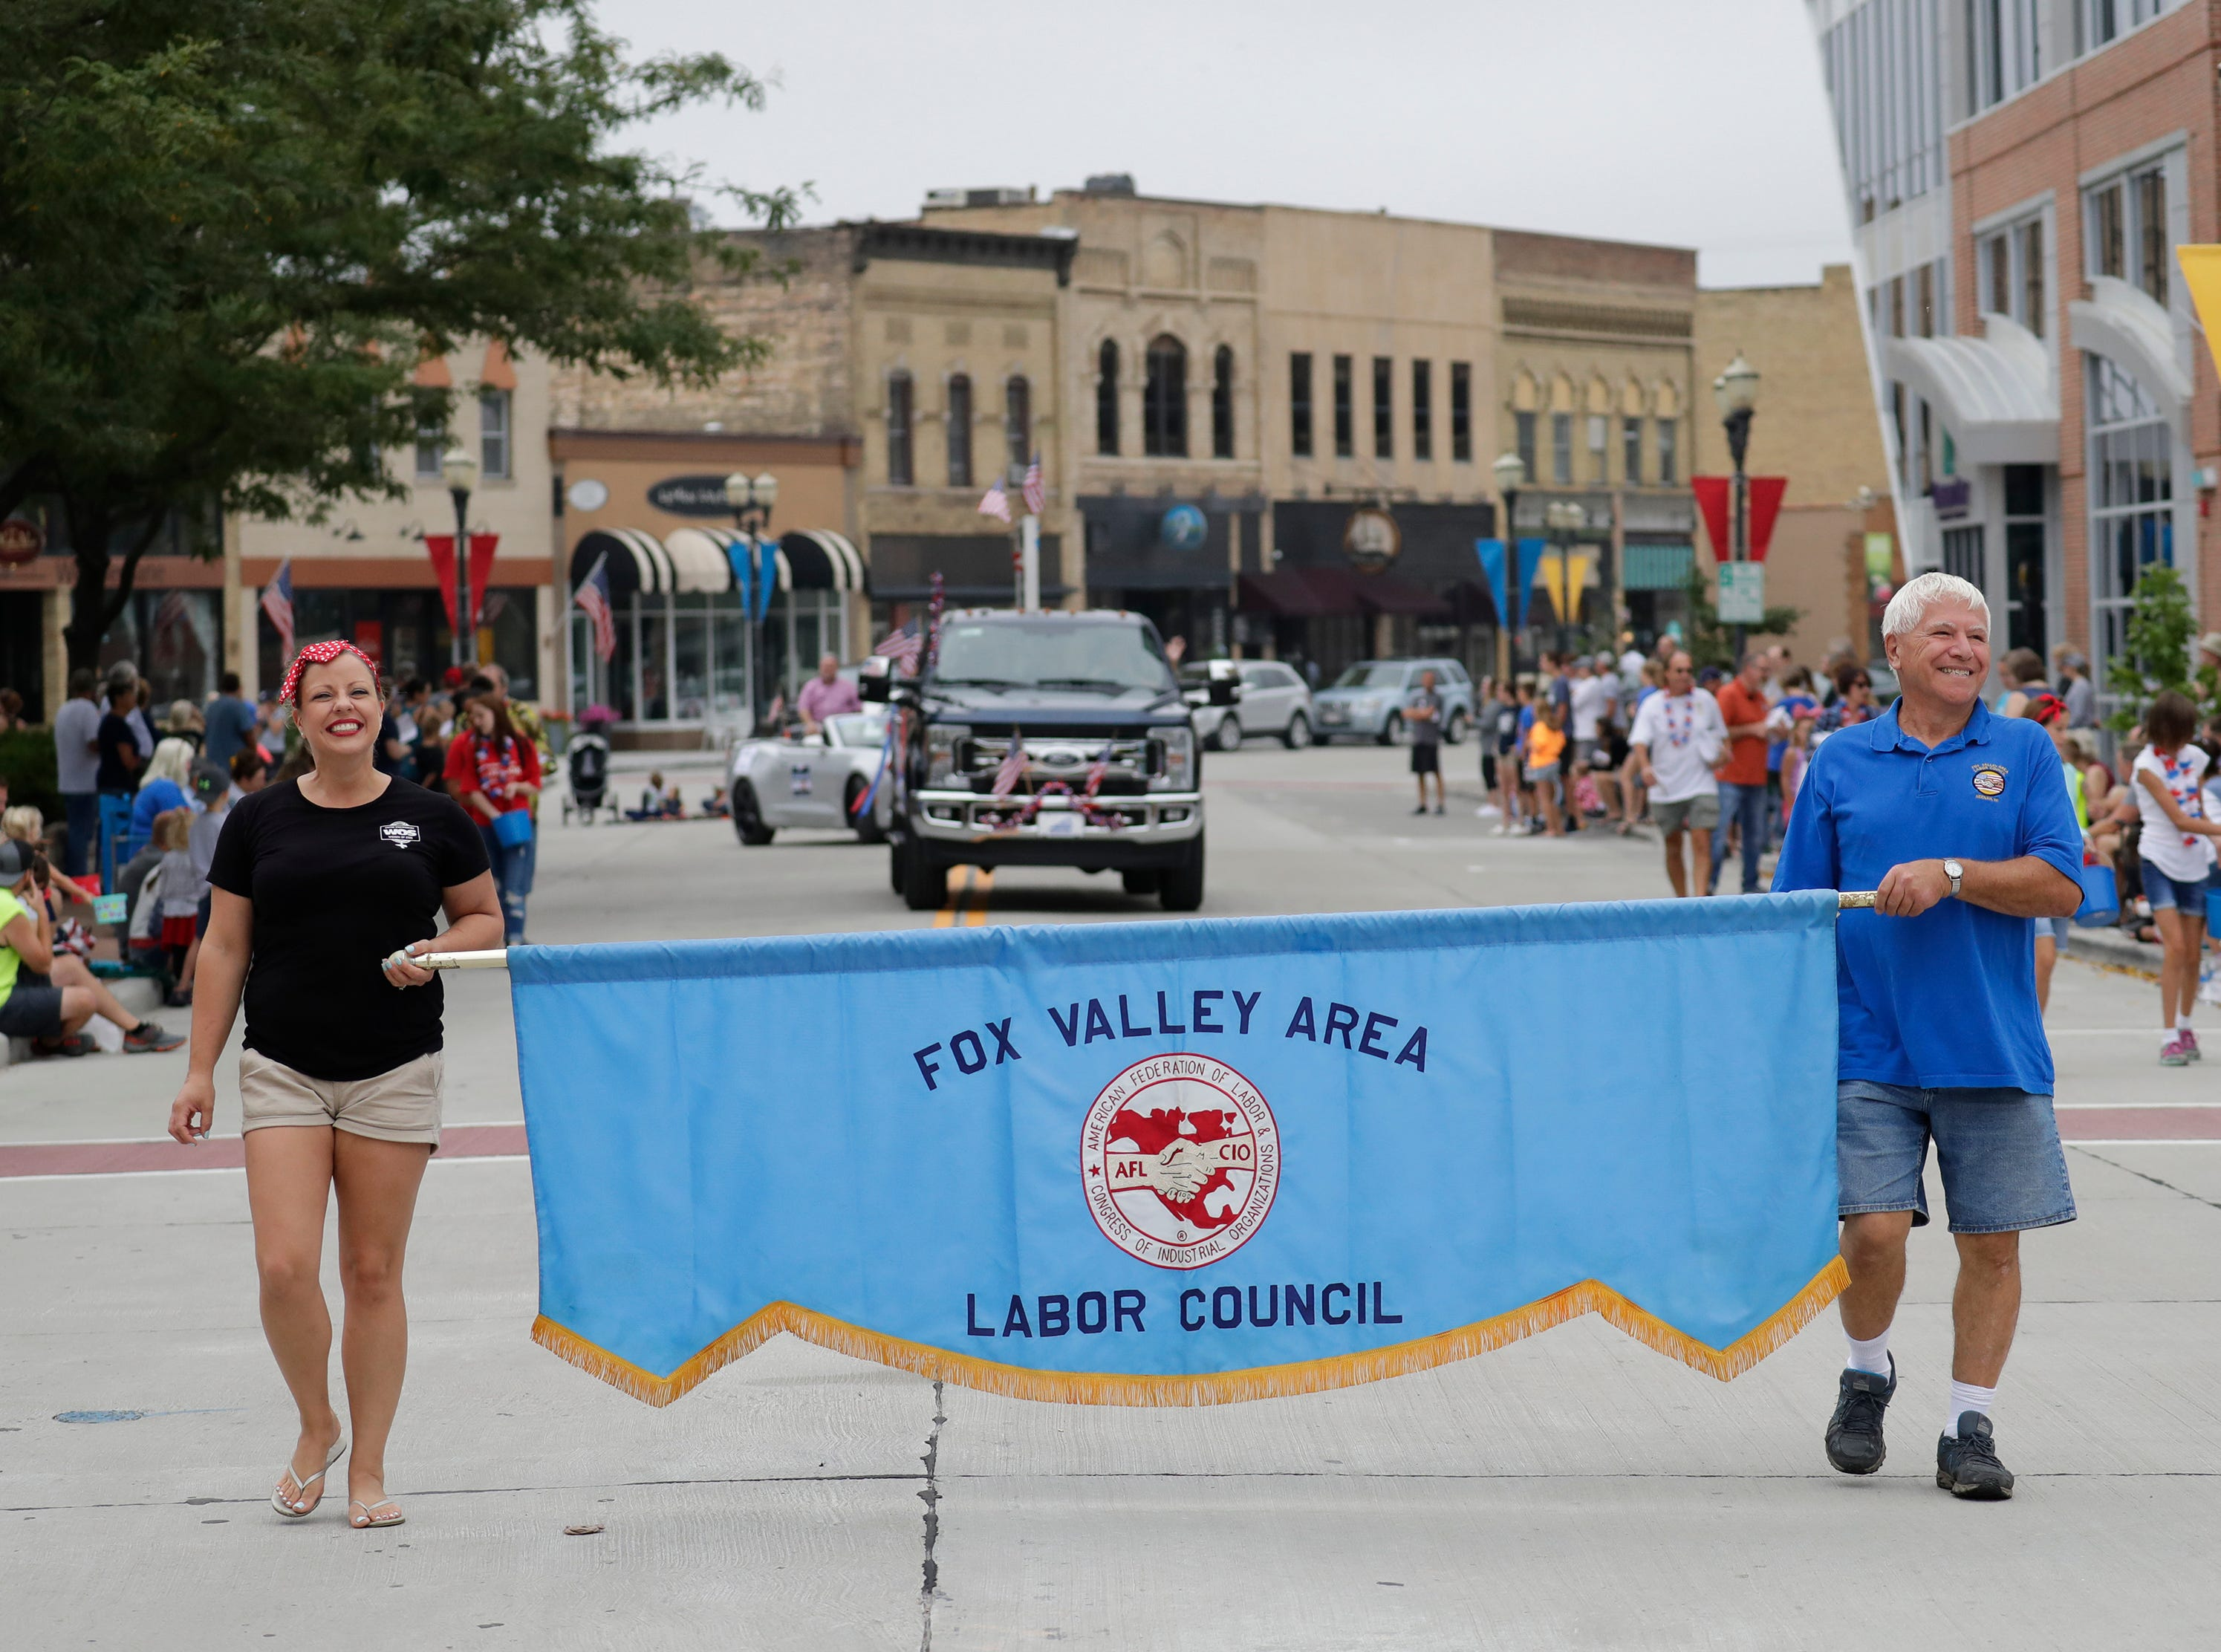 Jessica Schiessl, left, of Kimberly and Tom Brantmeier of Kaukauna participate in the Neenah-Menasha Labor Day Parade Monday, Sept. 3, 2018, in downtown Menasha, Wis. 